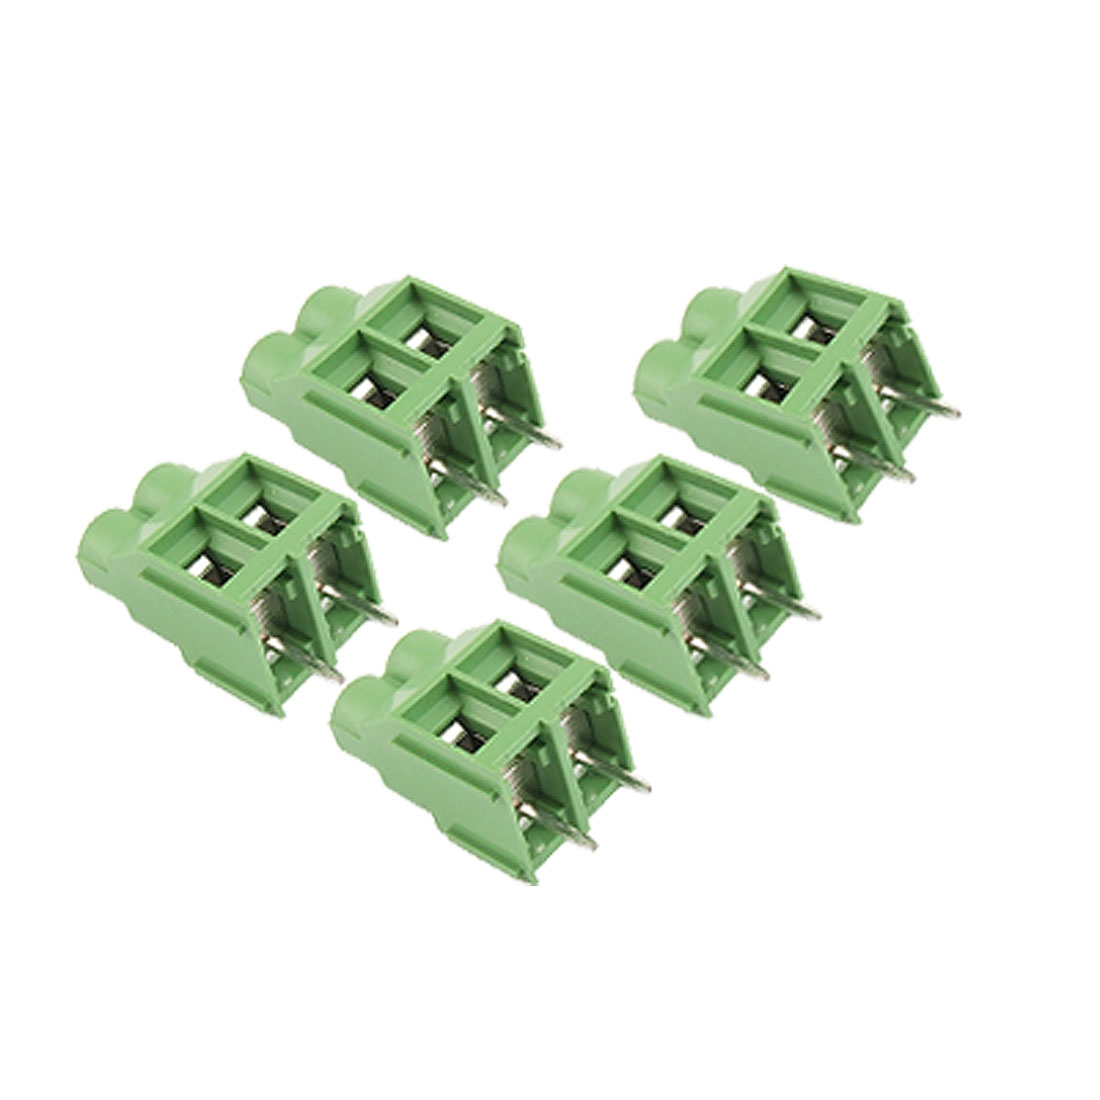 5 Pcs 9mm Pitch 2P Screw Terminal Block Connetor 300V 30A